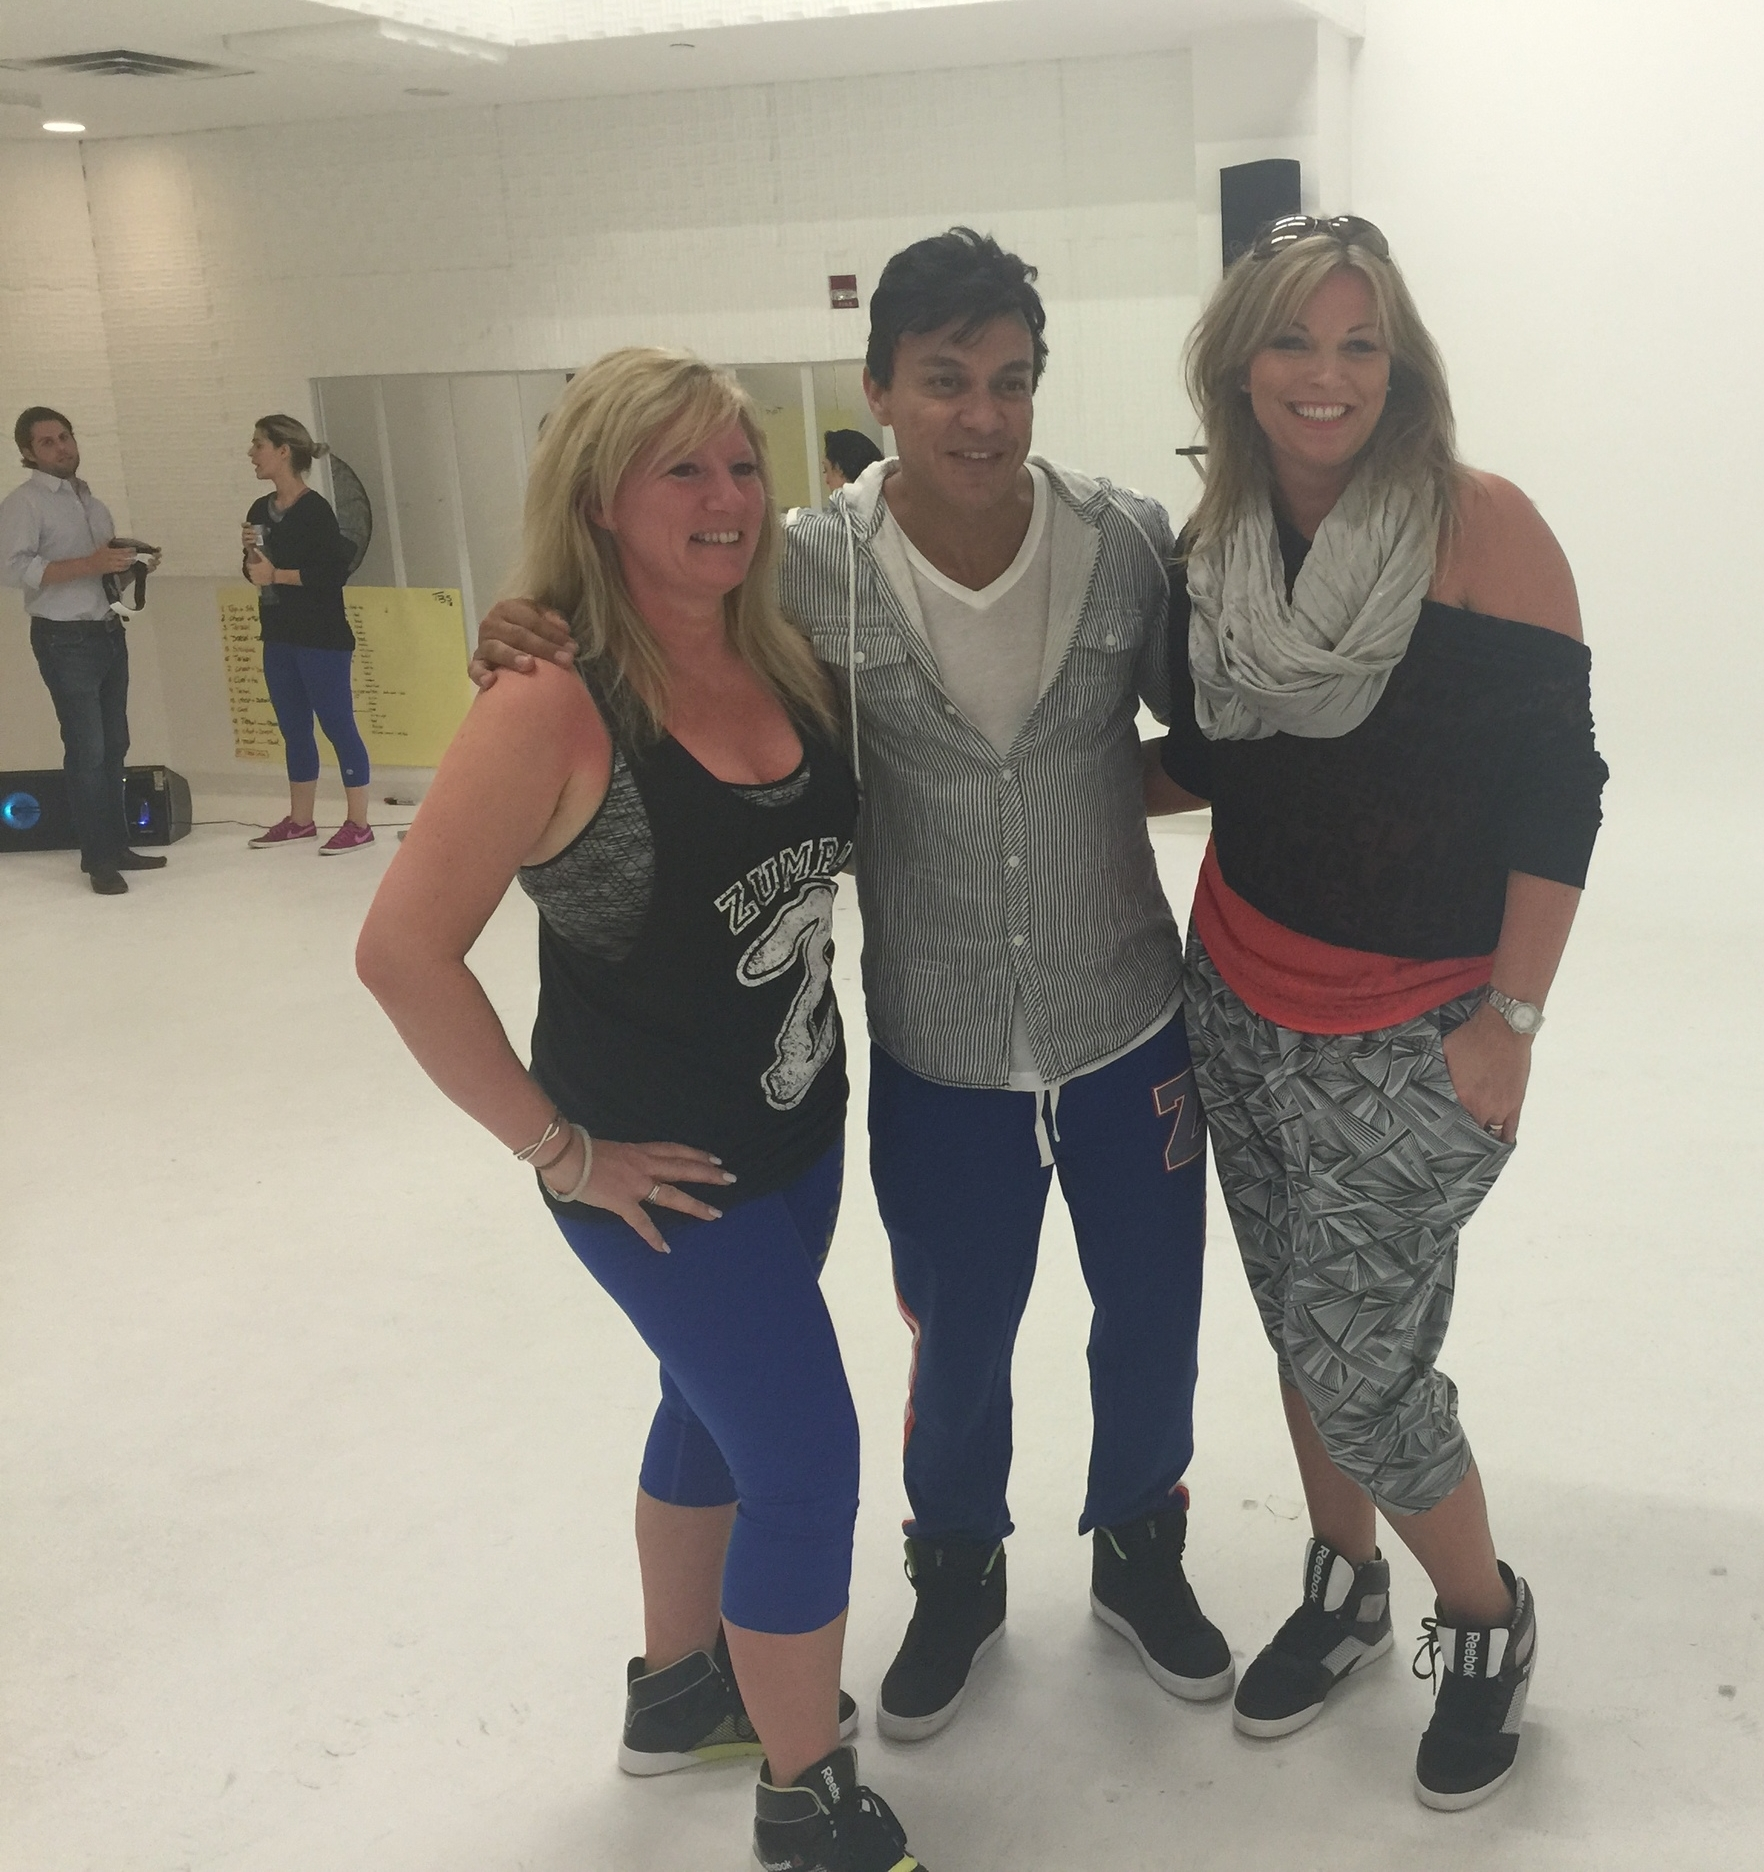 BETO PEREZ MIAMI ZUMBA HQ VIDEO SHOOT